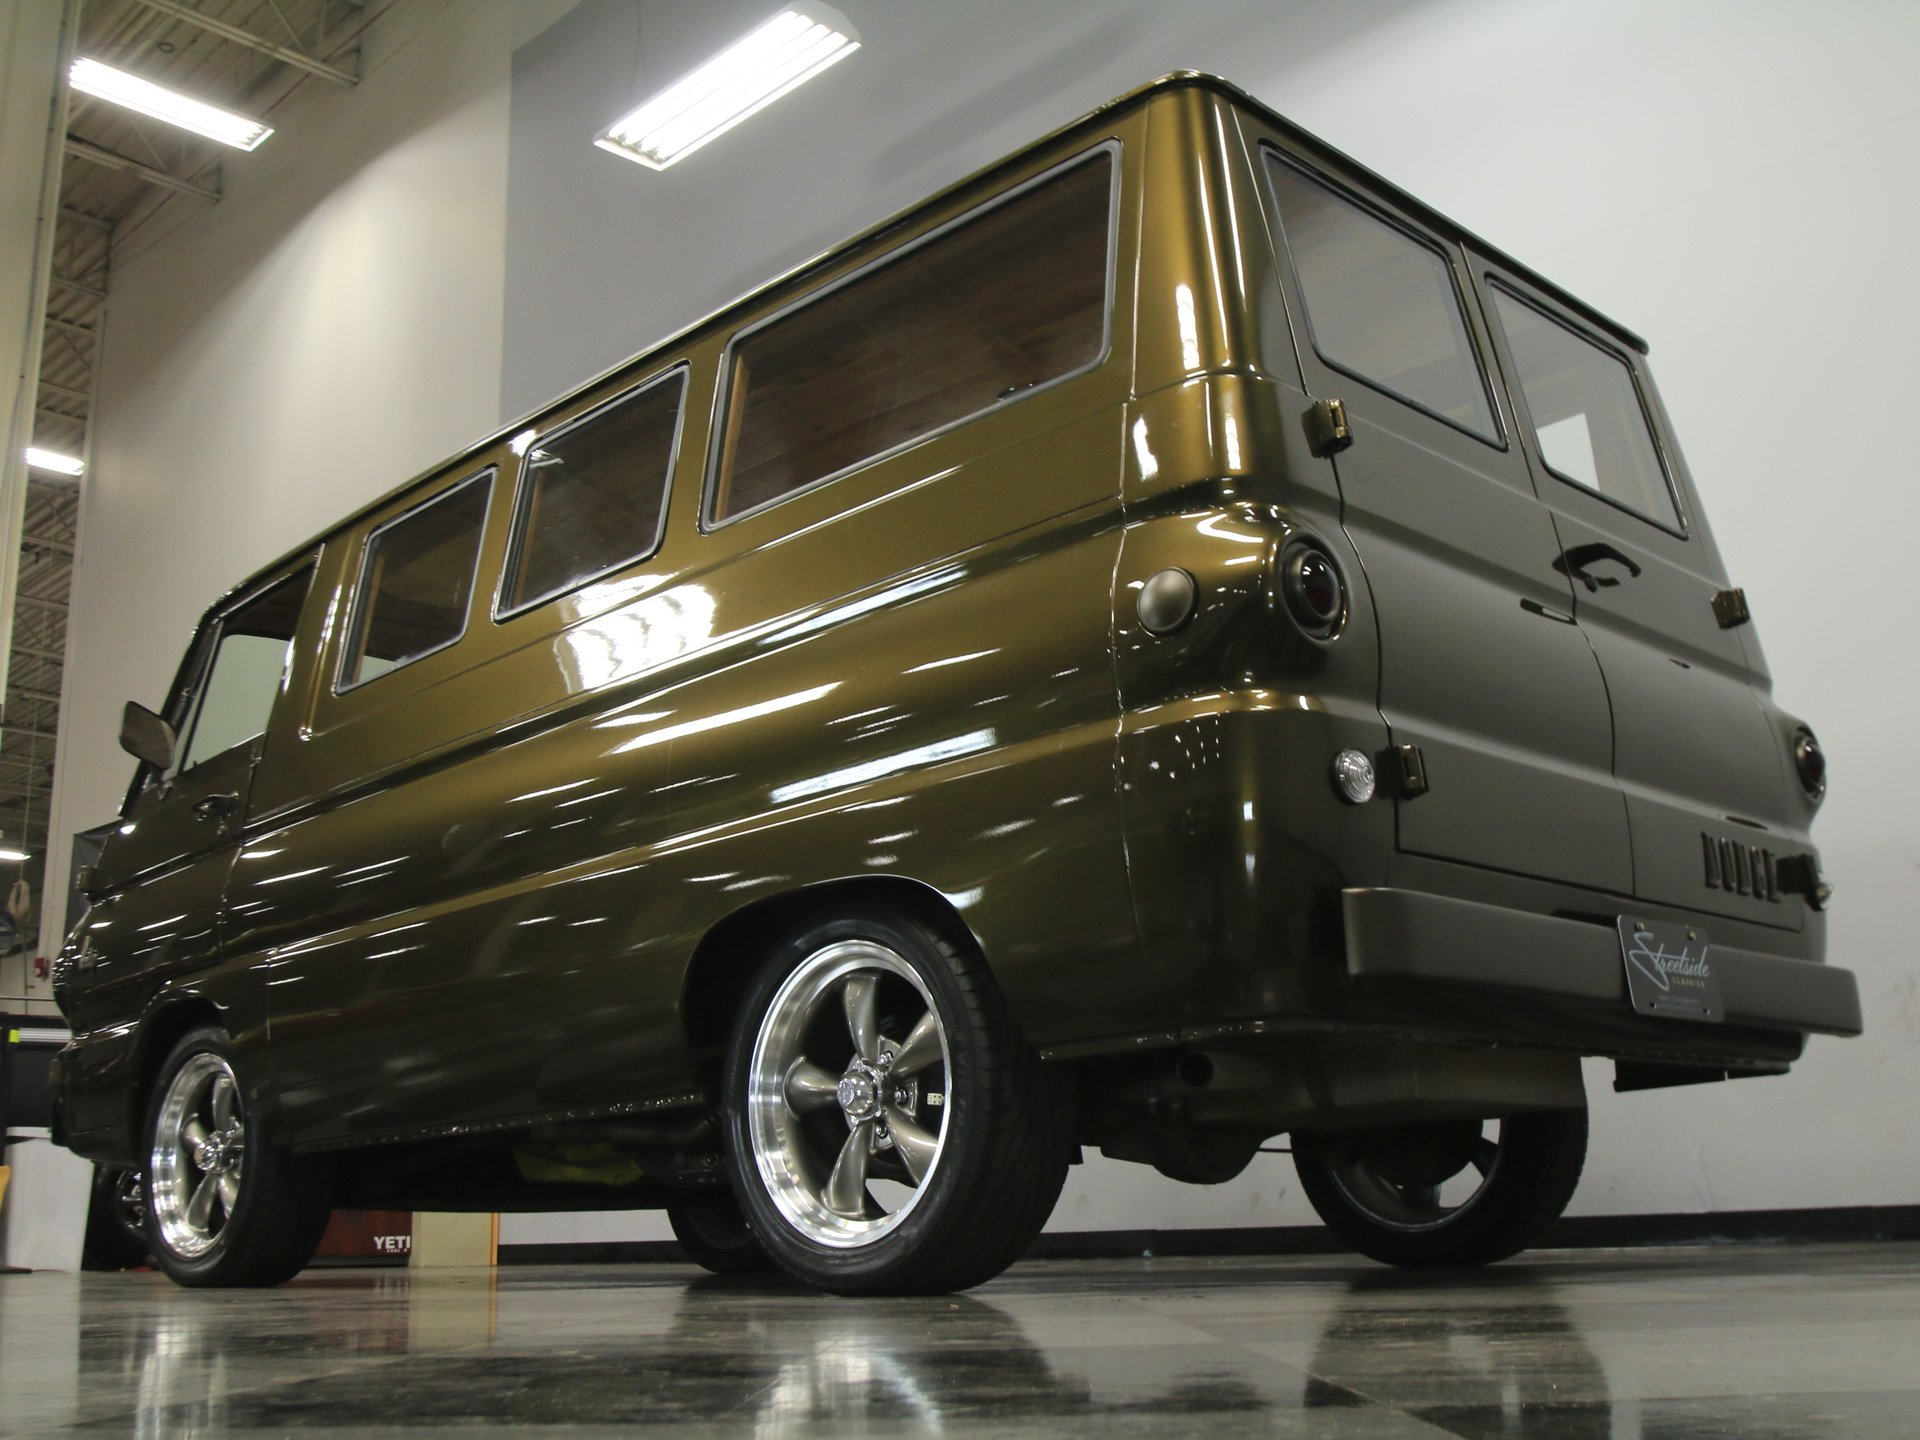 1966 Dodge A-100 | Streetside Classics - The Nation's